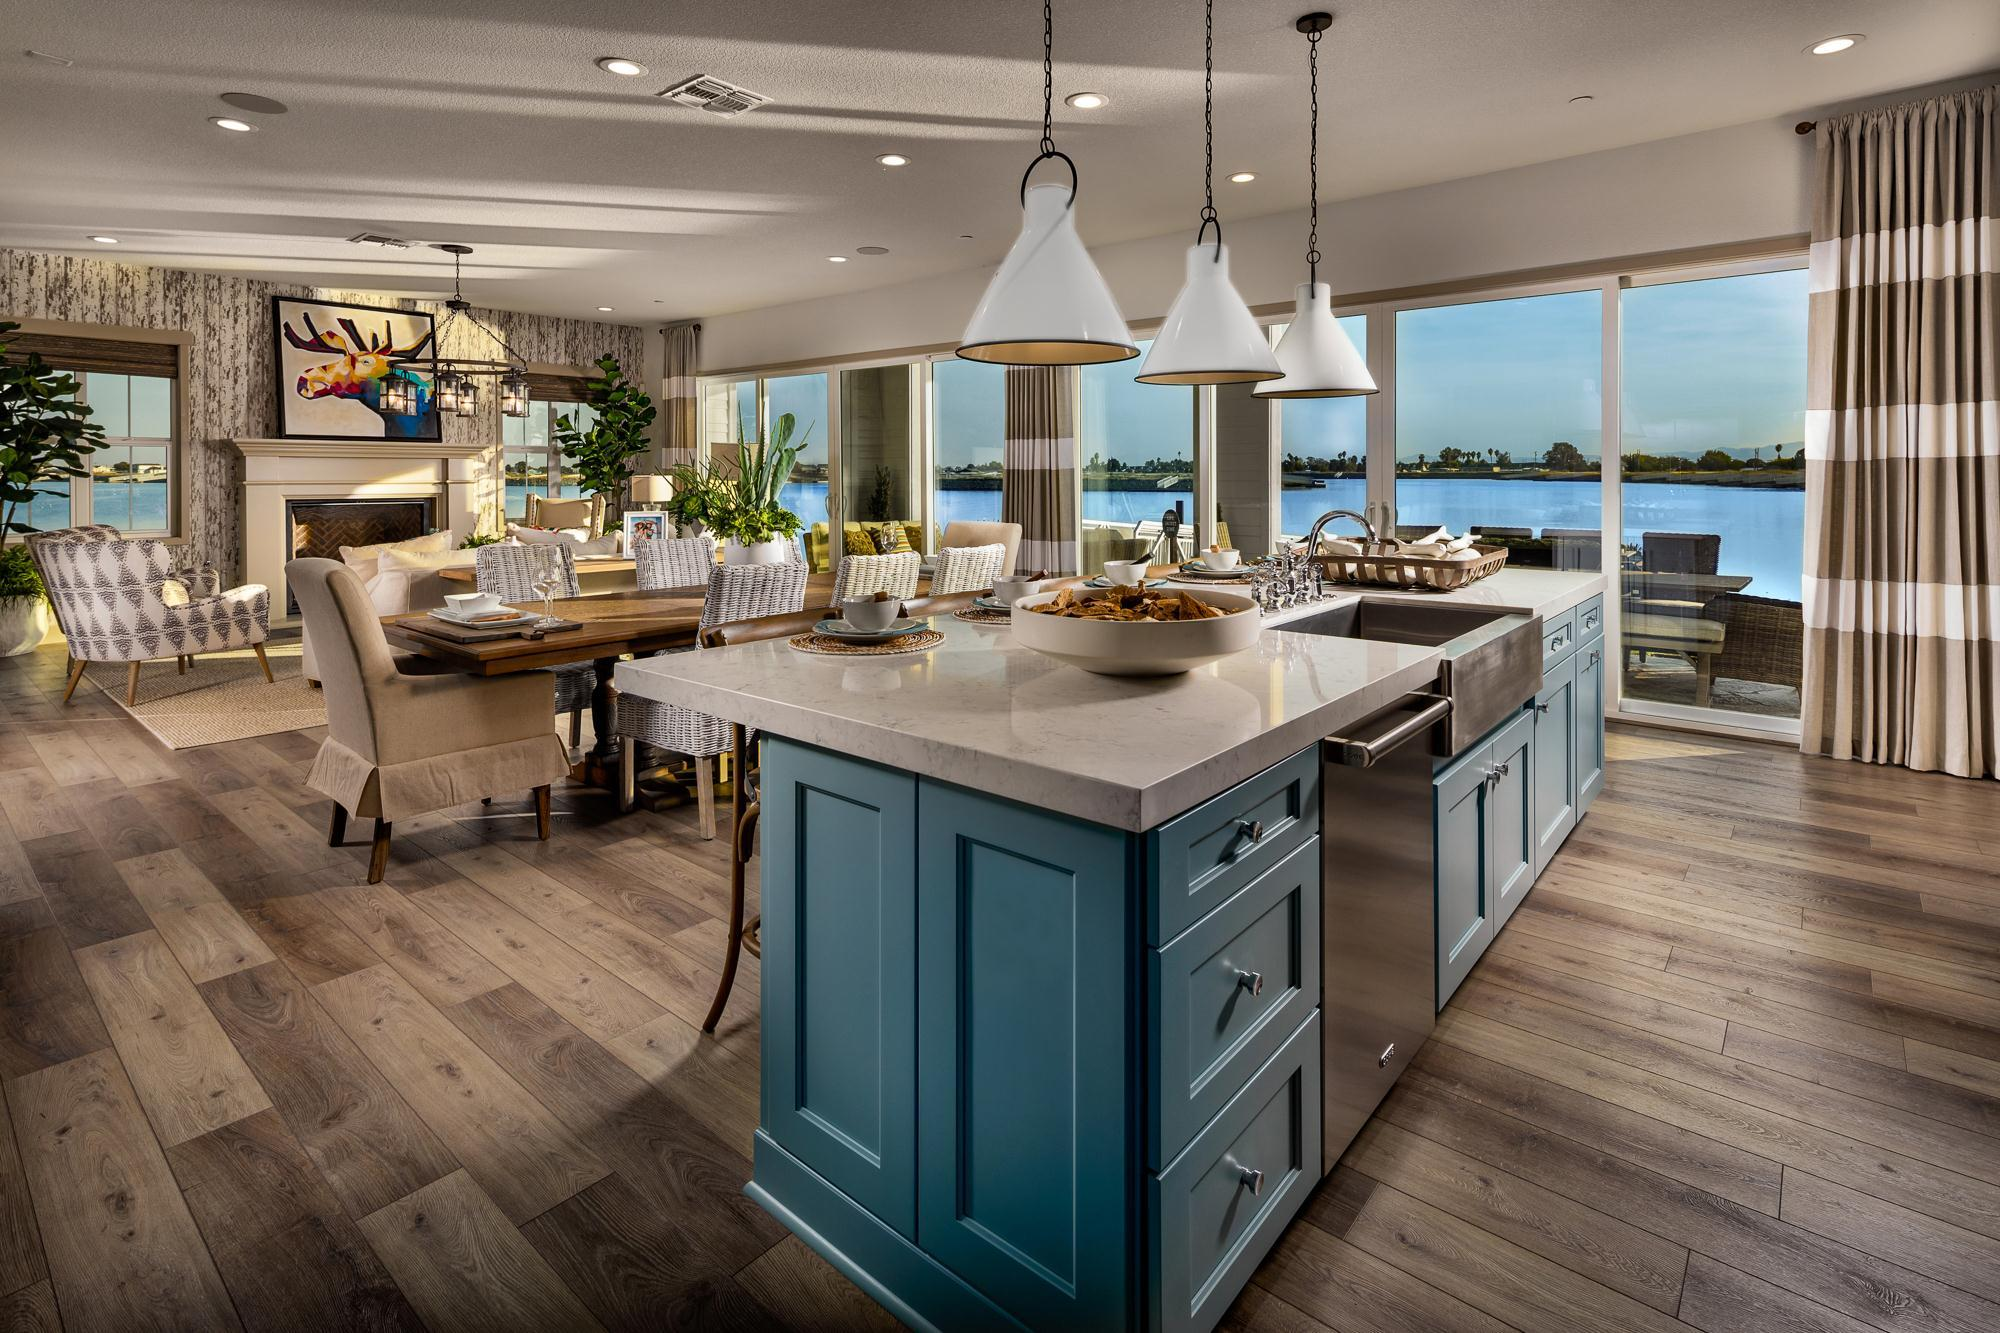 Kitchen featured in The Shoreline By Davidson Communities in Oakland-Alameda, CA